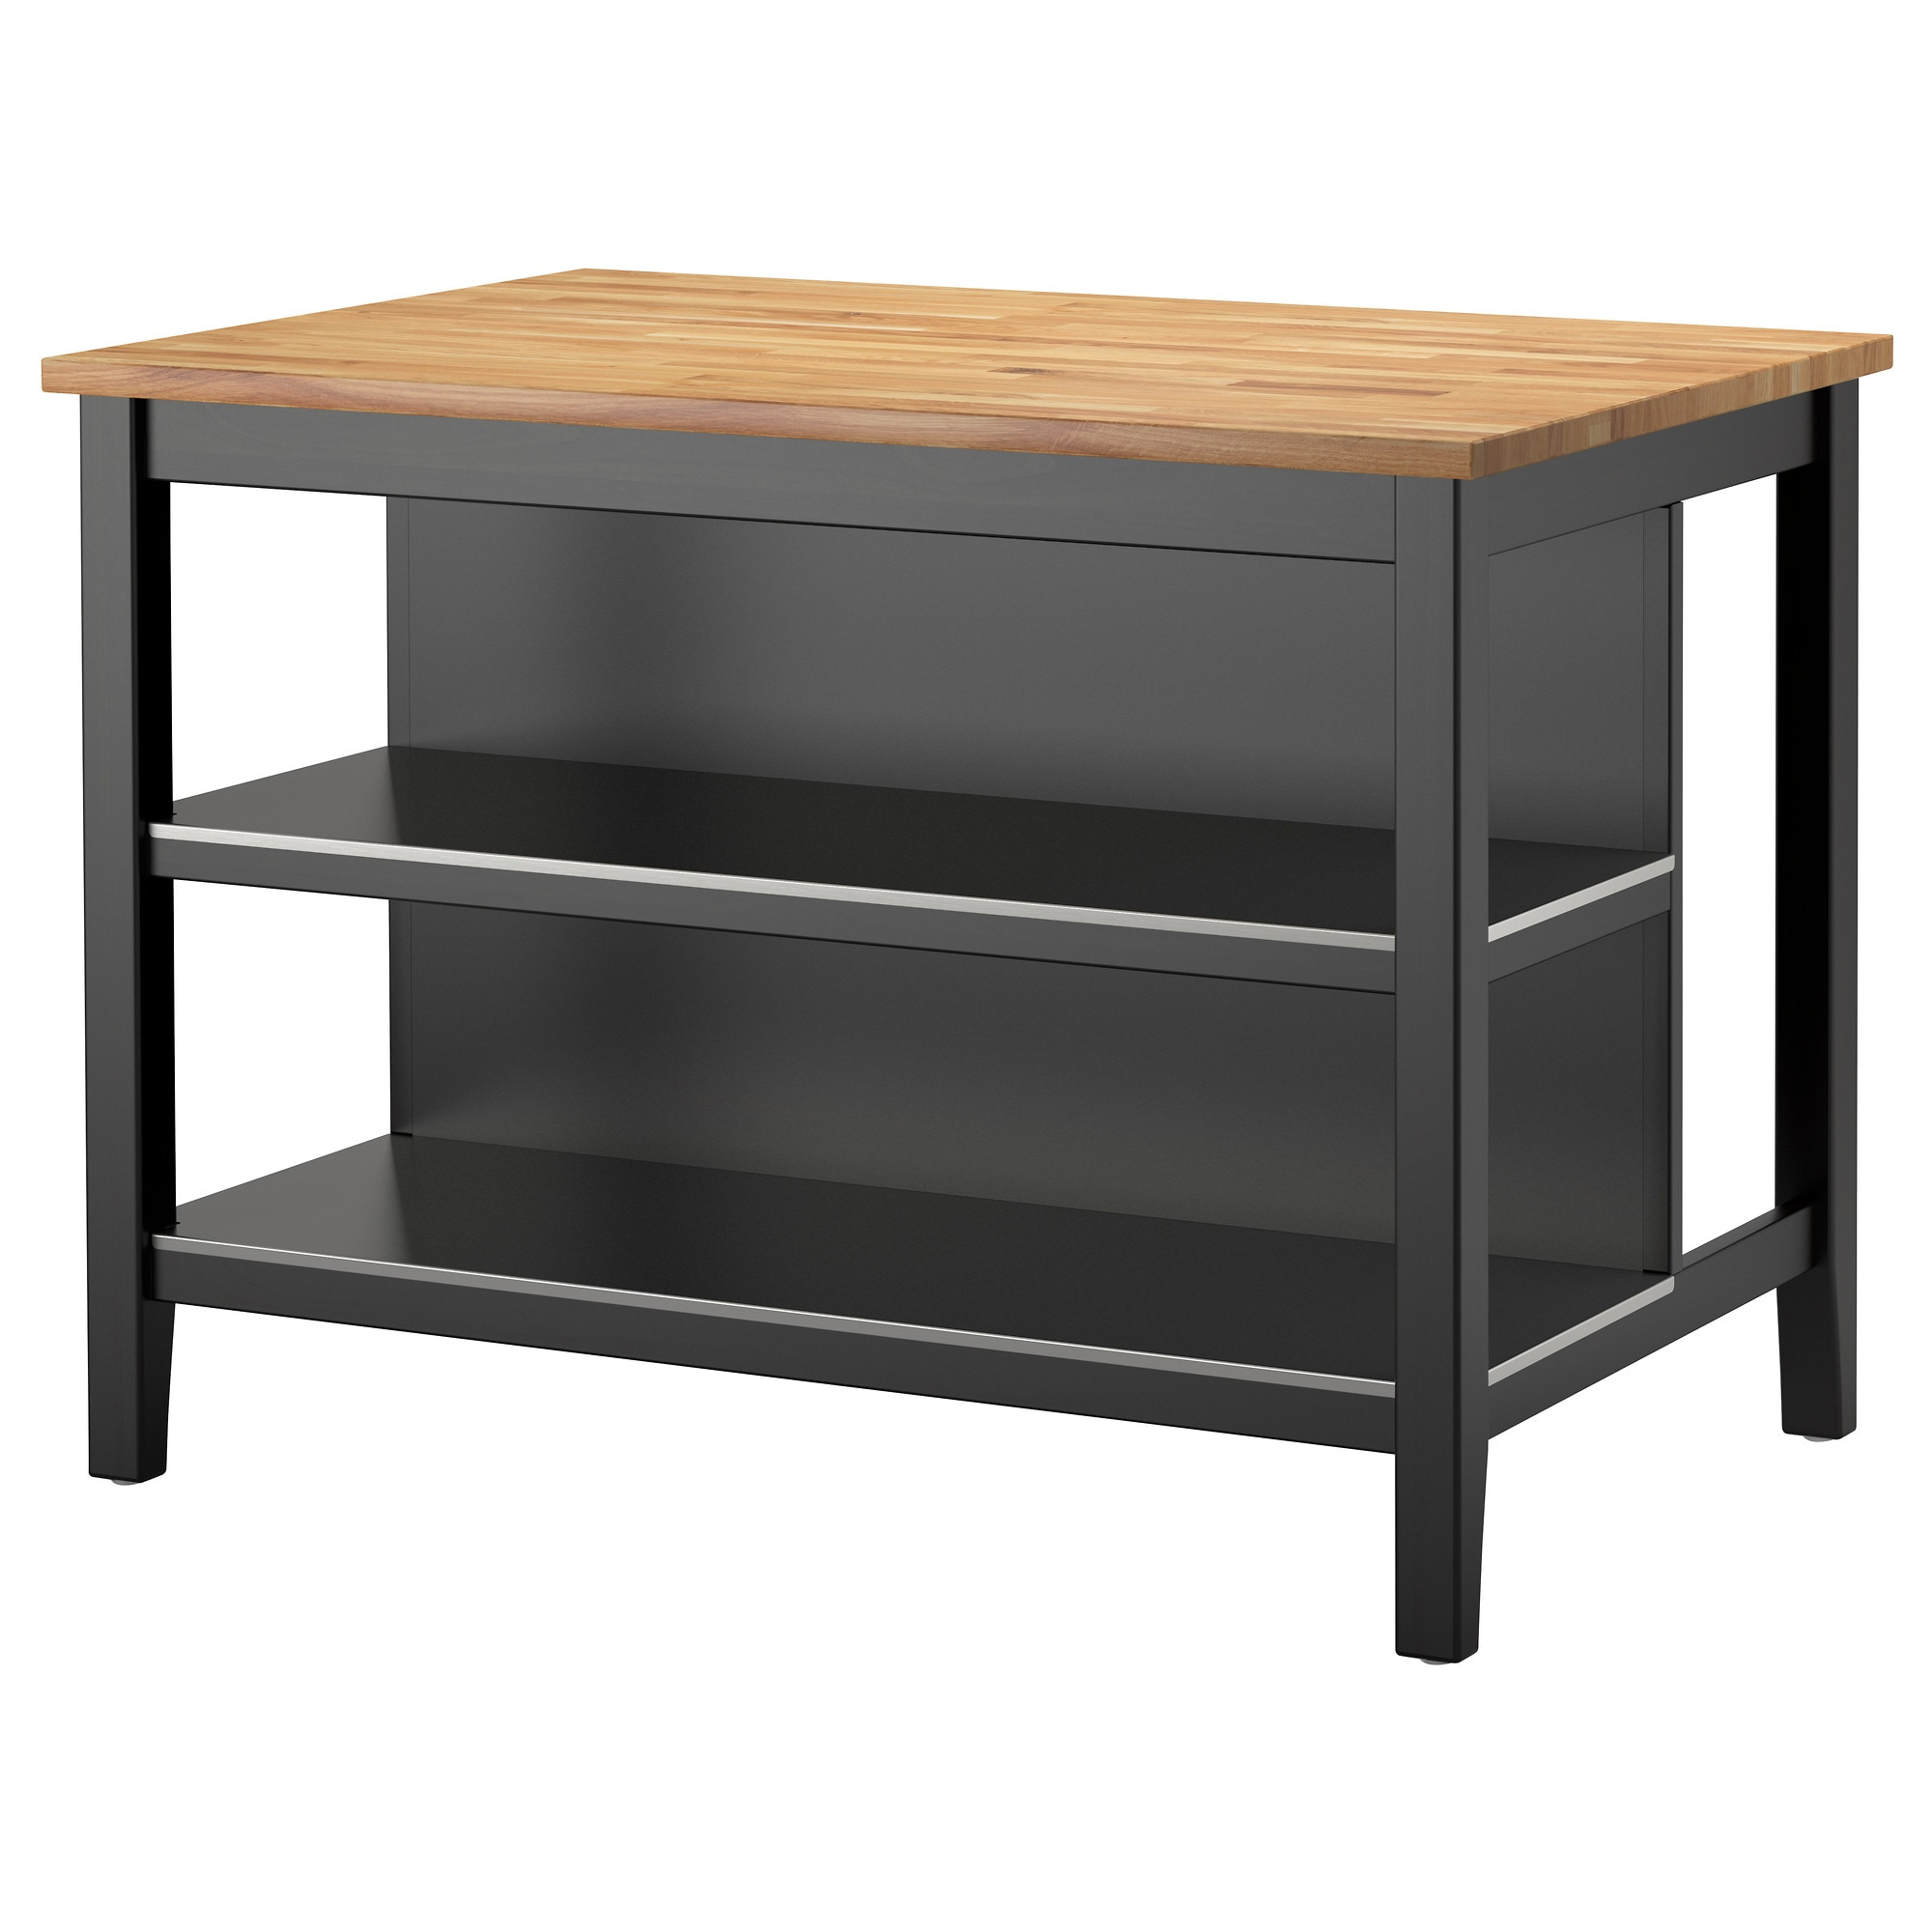 Kitchen Island Bench On Wheels kitchen islands & carts - ikea